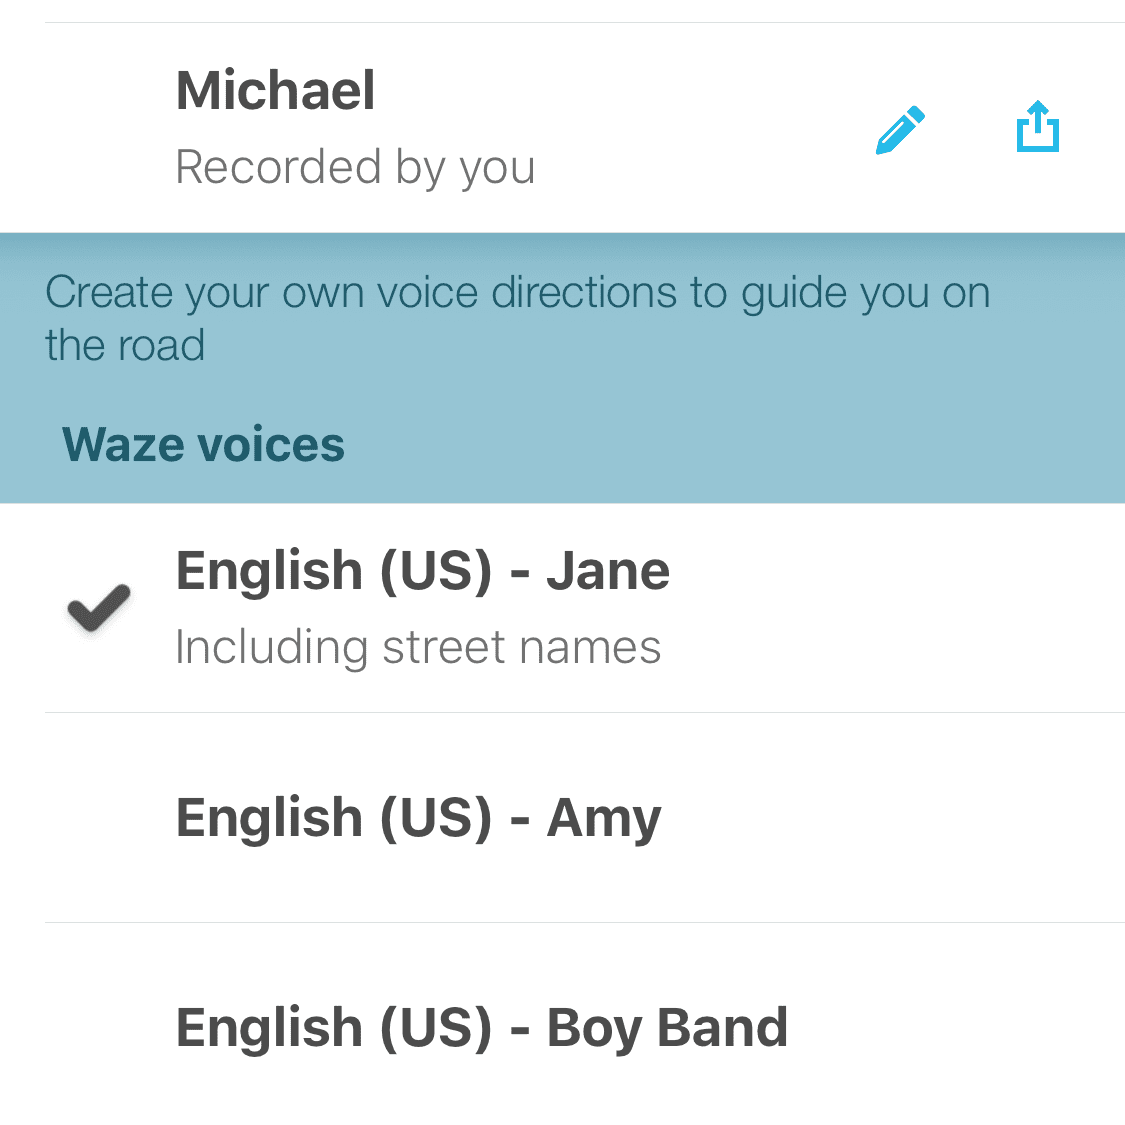 How to Change Waze Voices